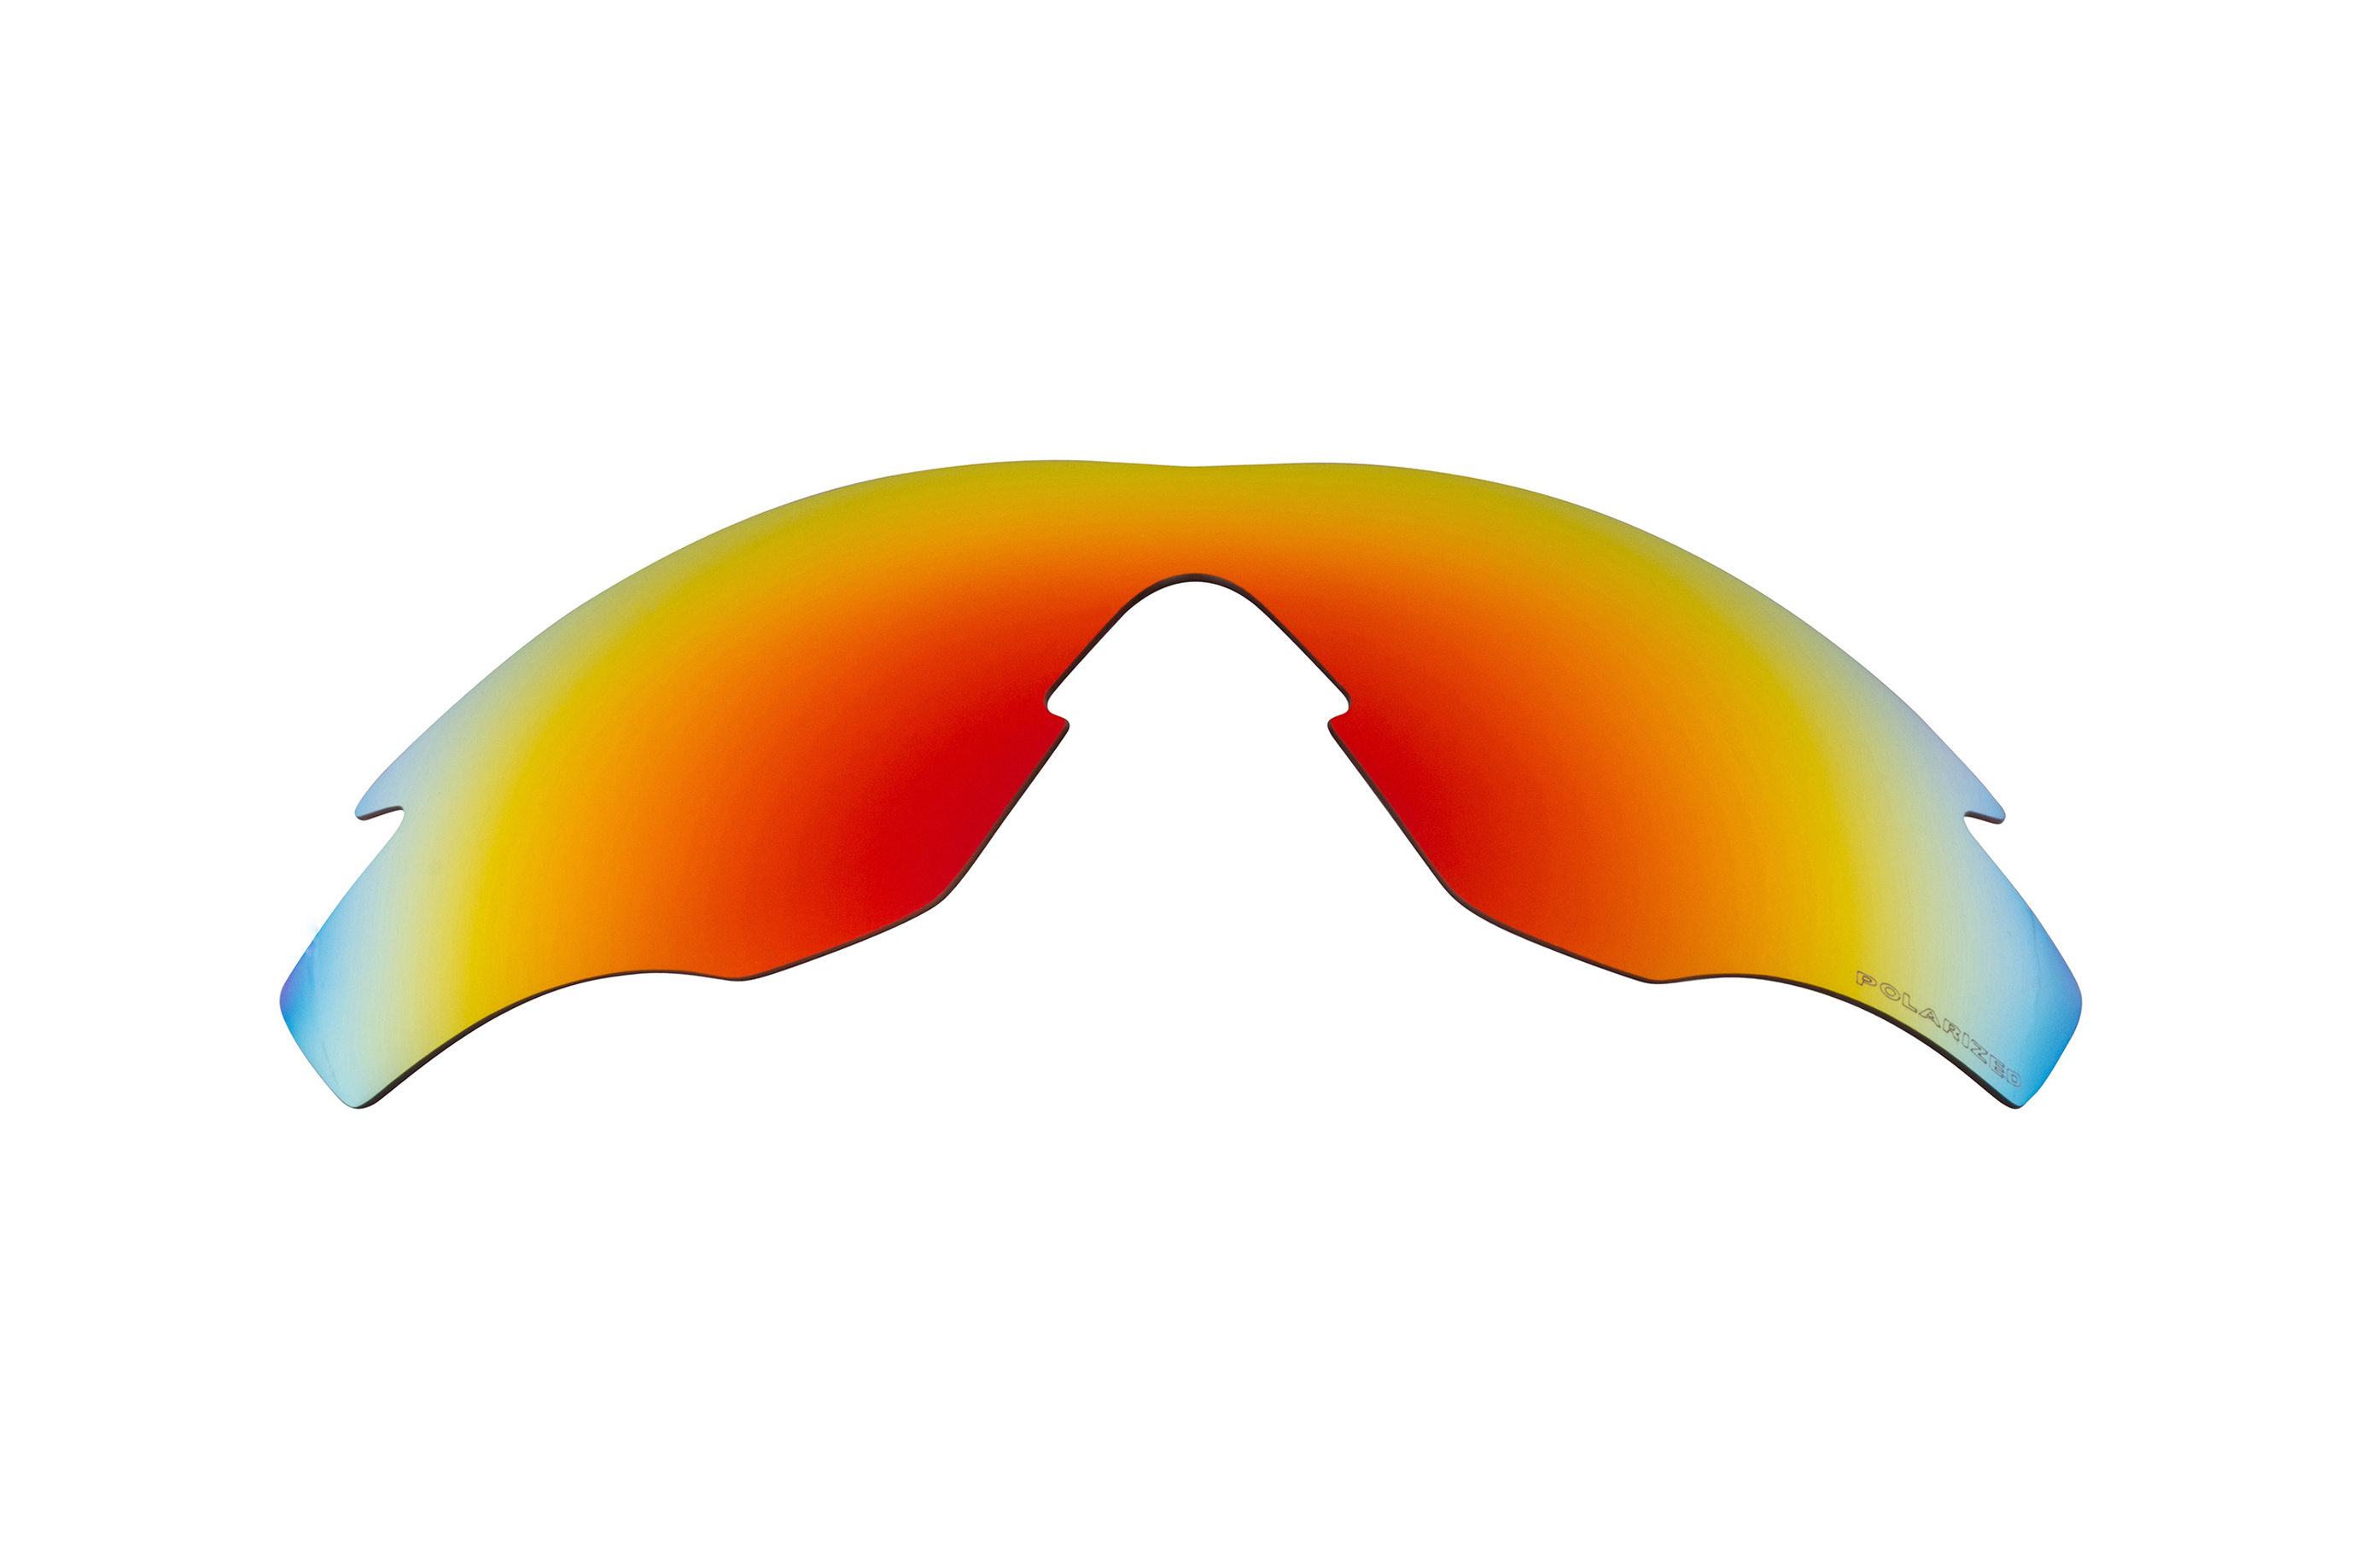 35b9627098 Details about M2 Frame XL Replacement Lenses Polarized Red by SEEK fits  OAKLEY Sunglasses